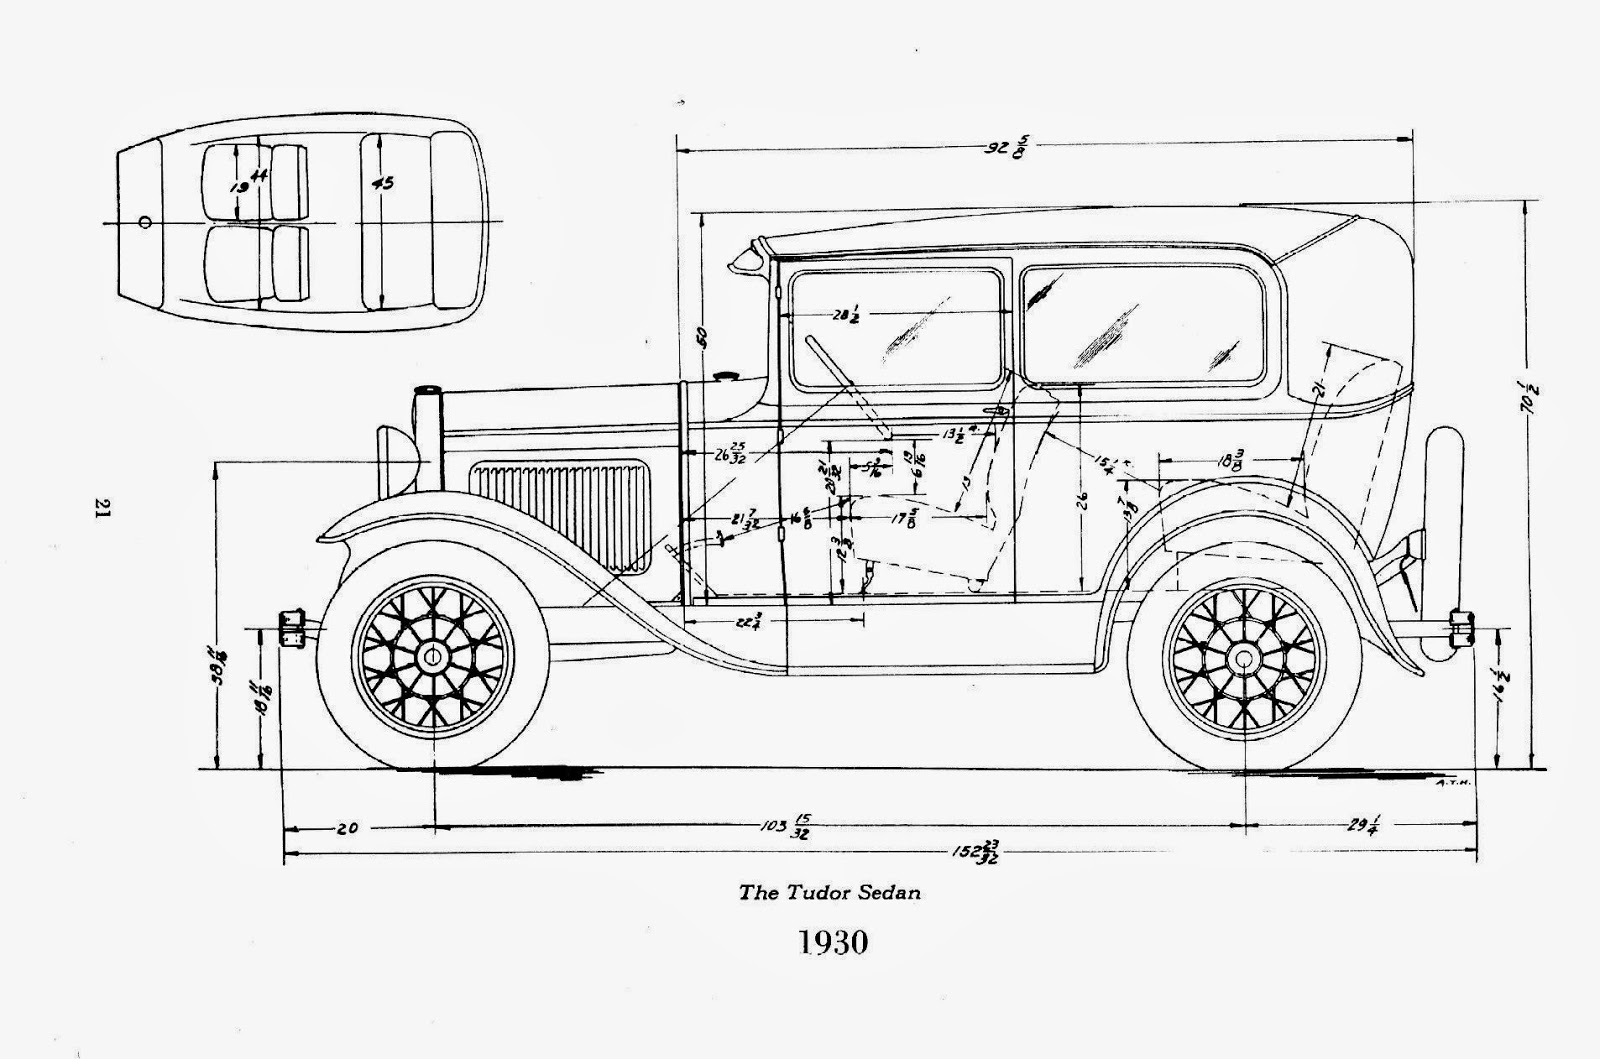 1931chevrolet as well Dimension as well AWD1006 as well 484488872382993368 moreover 1931 Model A Engine Diagram. on 31 model a ford frame dimensions